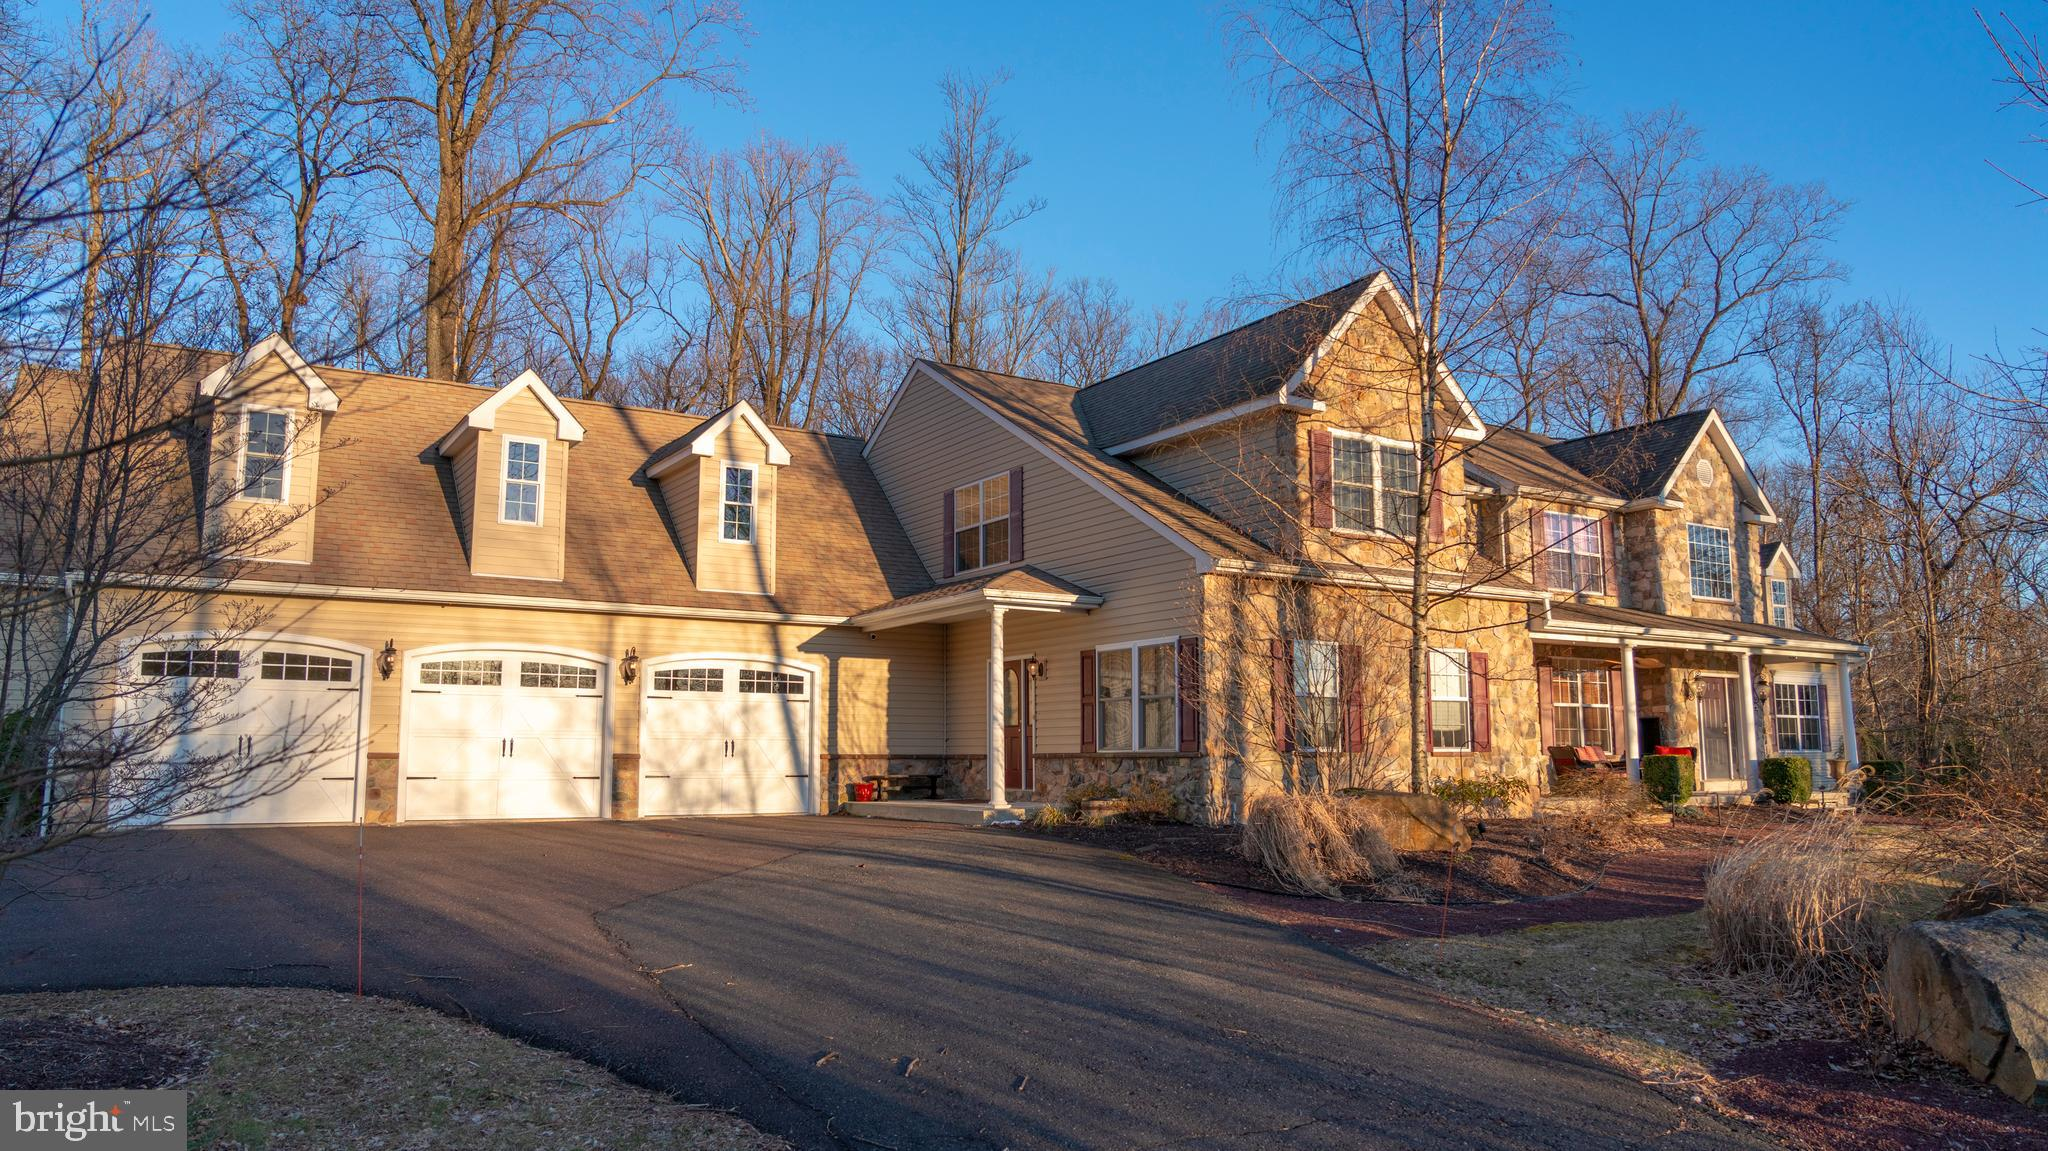 9279 ROSEWOOD DRIVE, EAST GREENVILLE, PA 18041